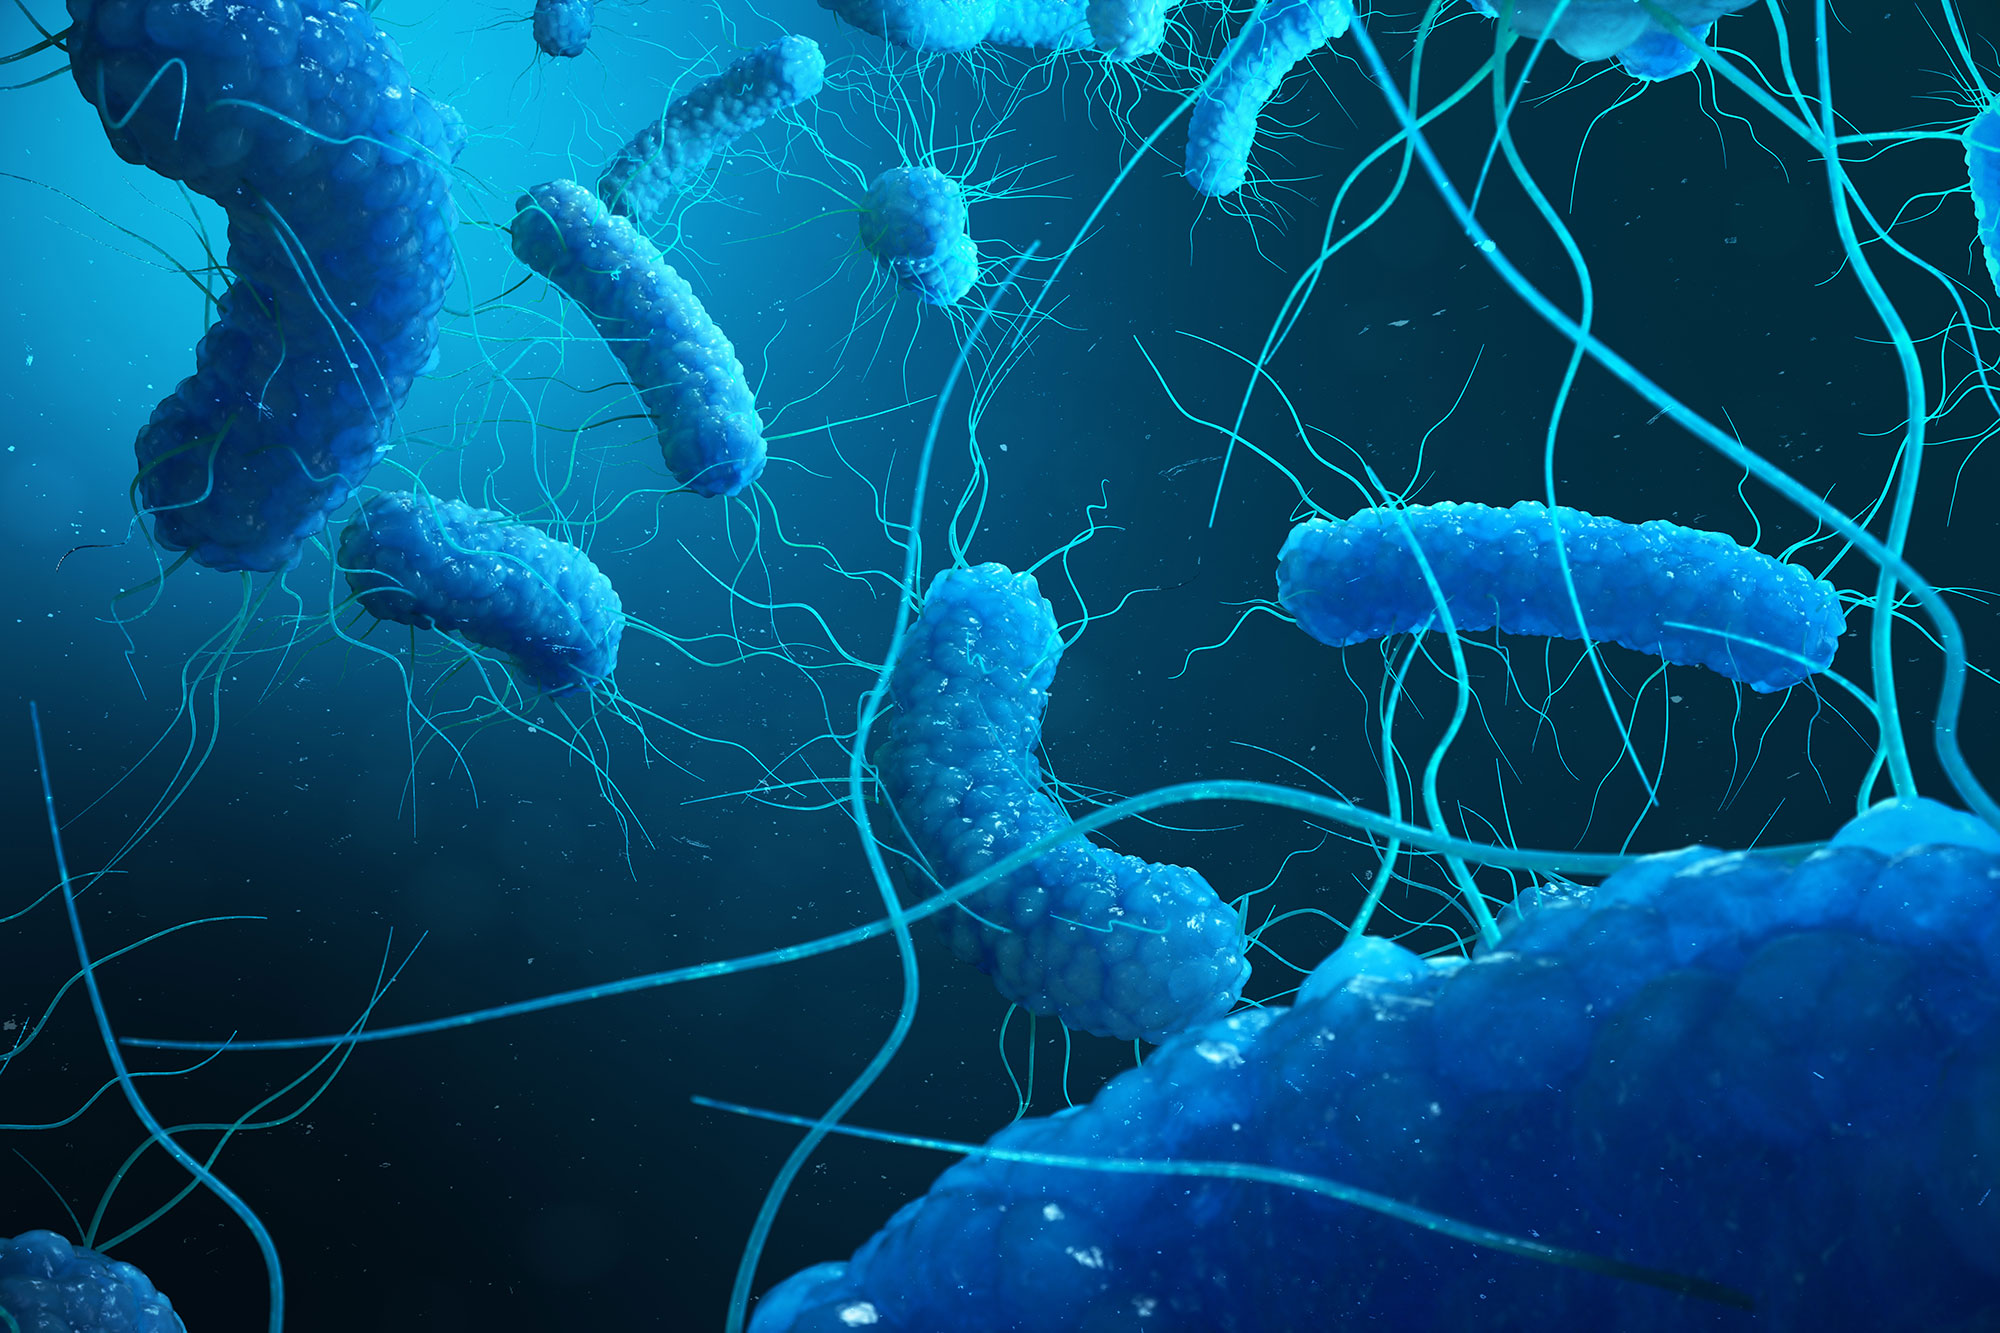 Delaying Legionella prevention adds to public health risk, says Swiftclean